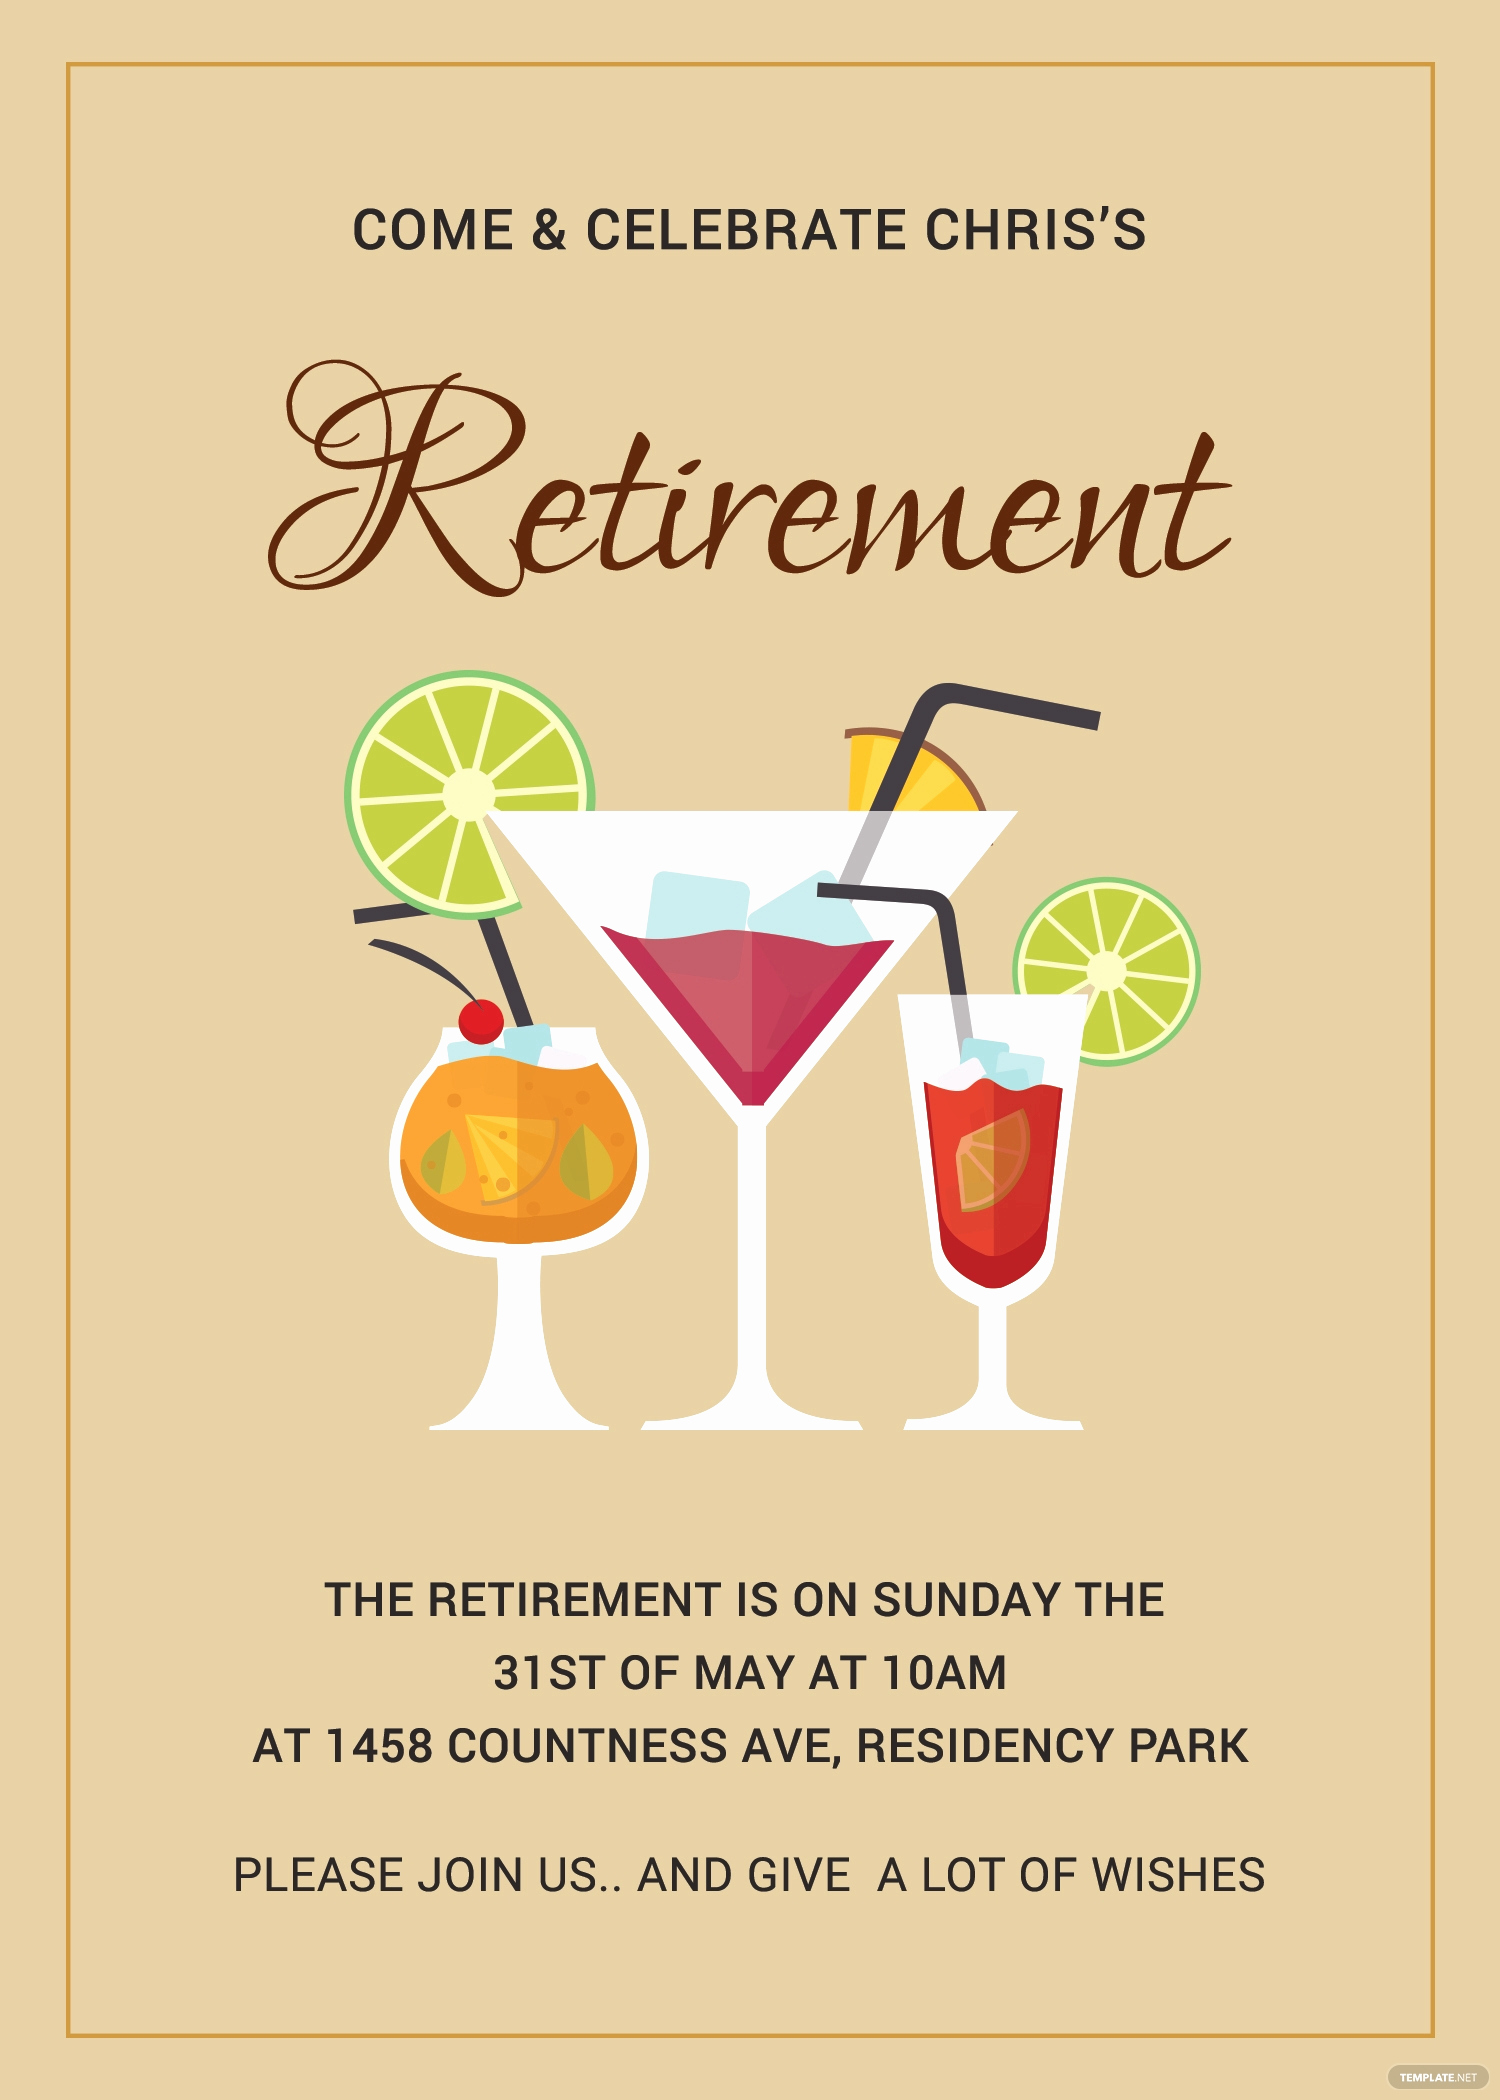 Retirement Party Invitation Template Free Fresh Printable Retirement Party Invitation Template In Adobe